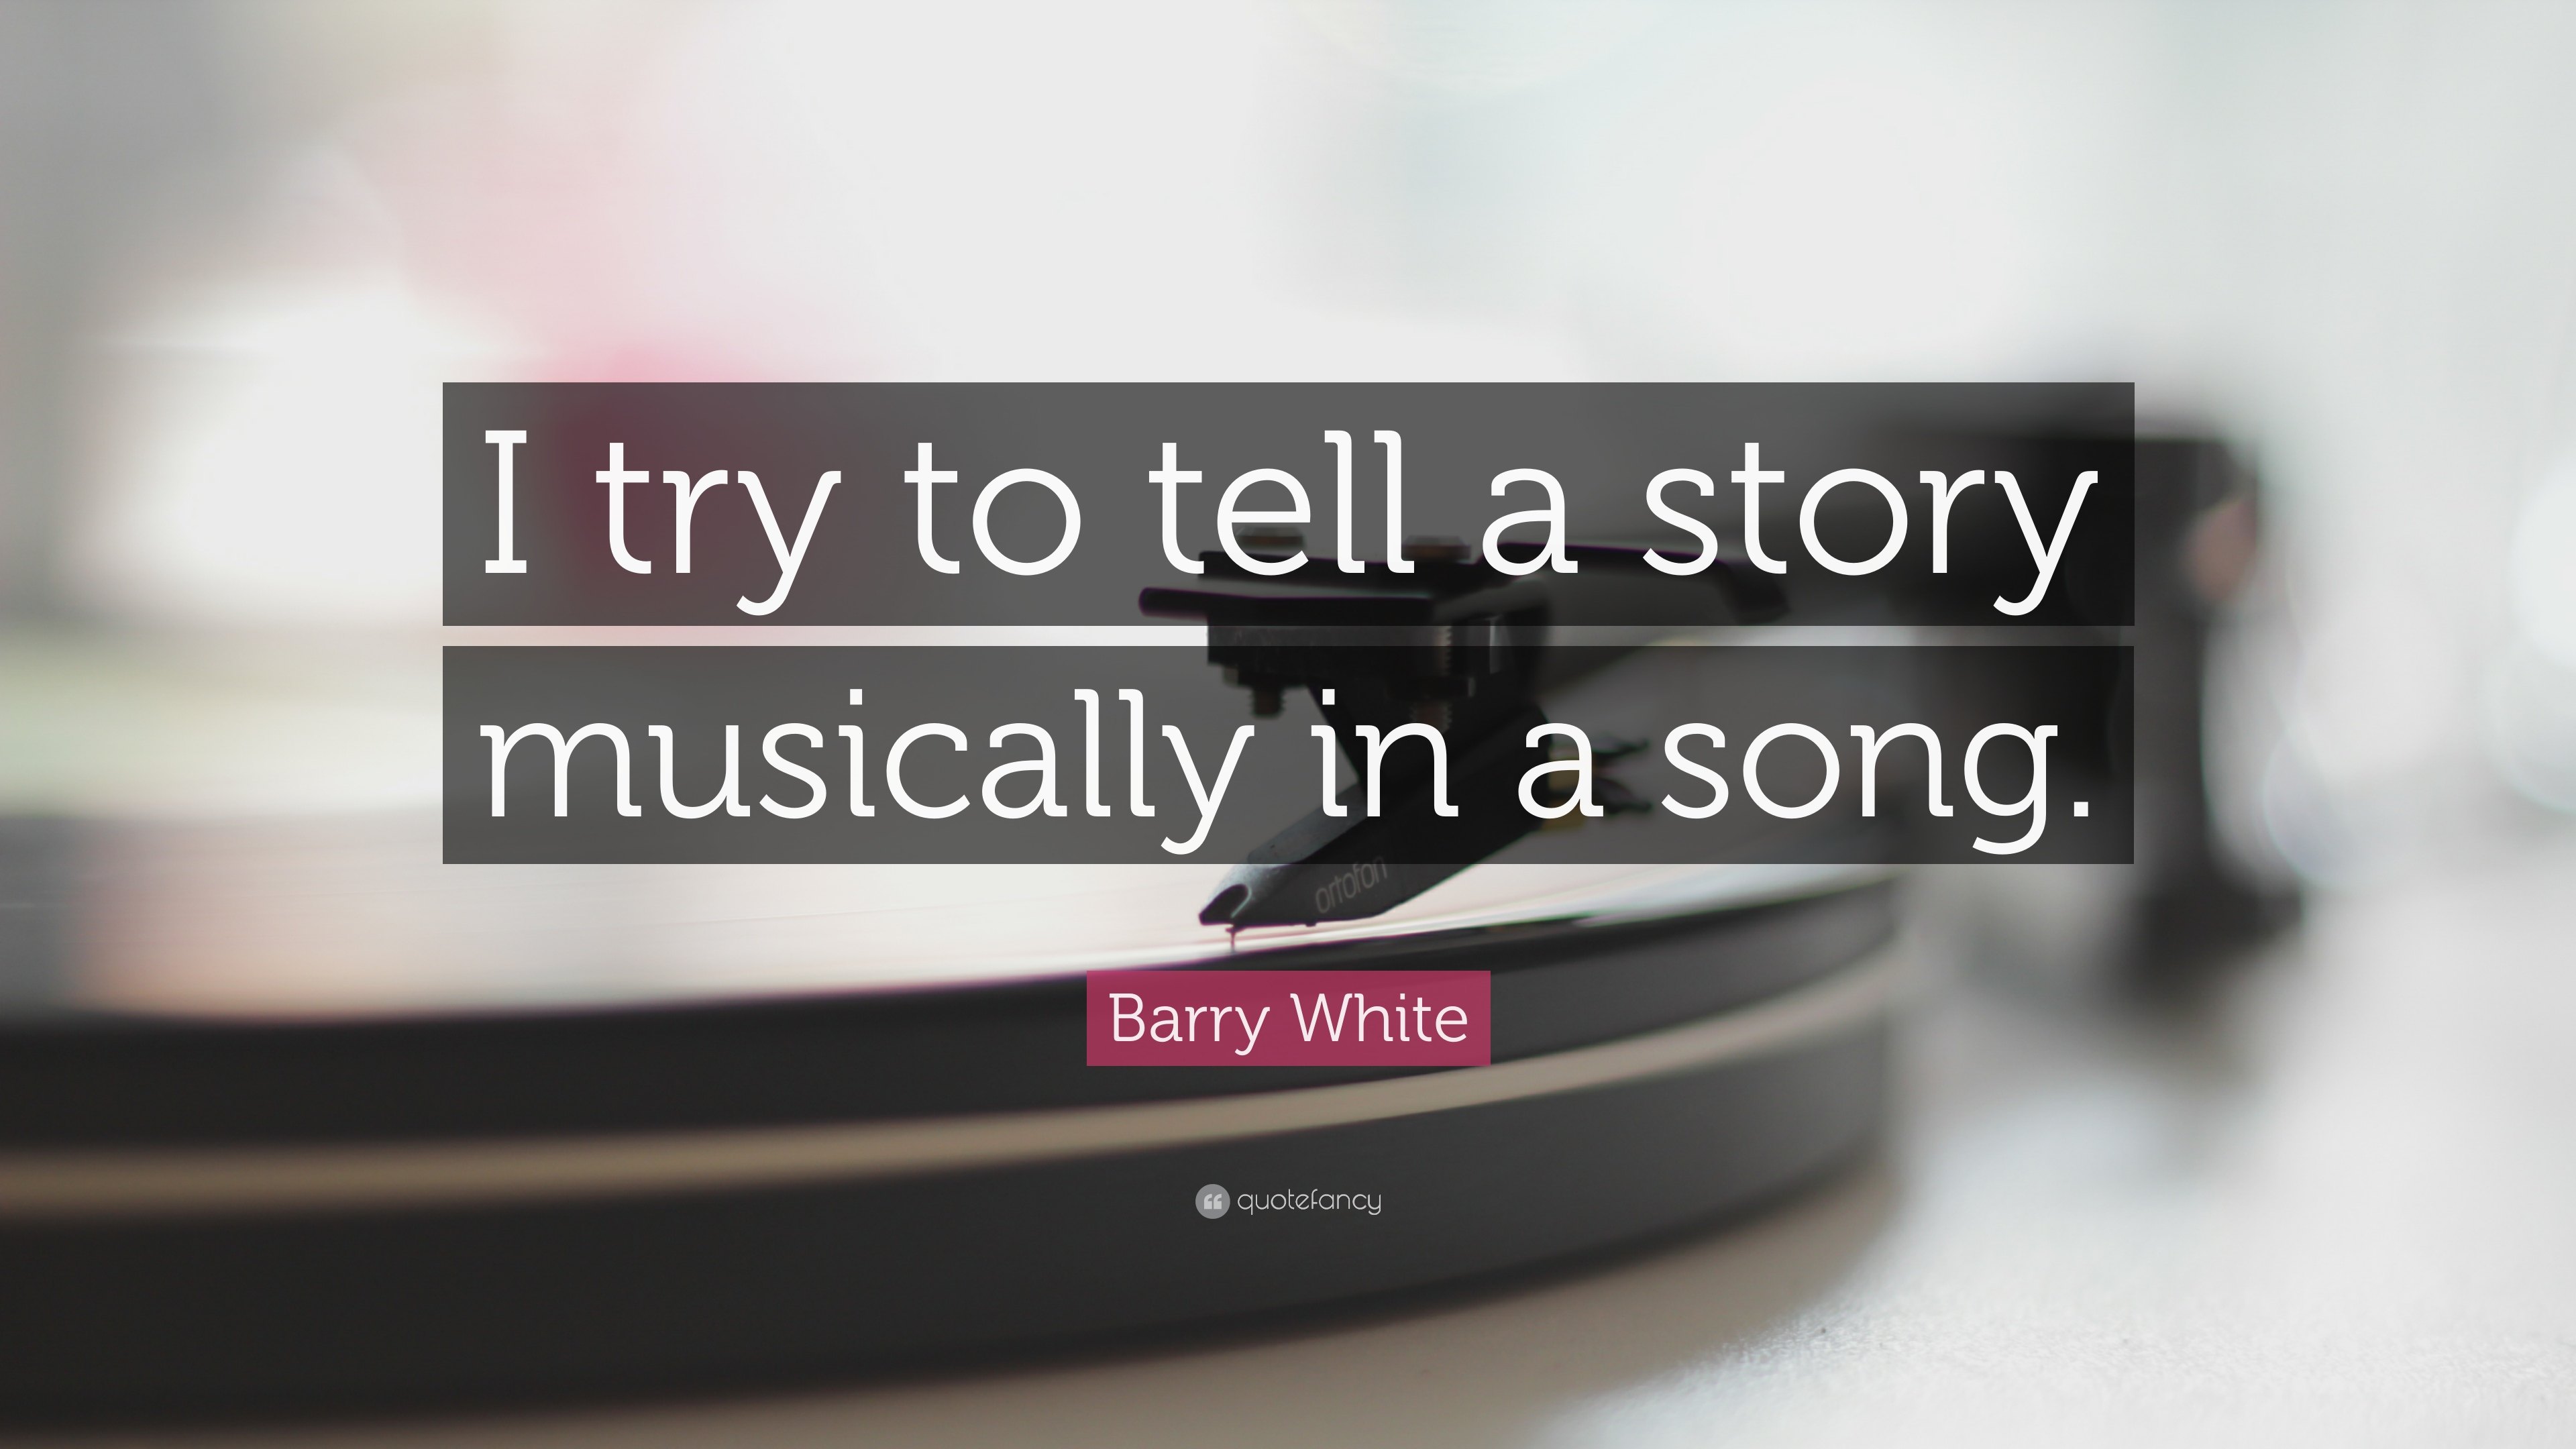 Barry White Quote - My Dad Is Rich Quotes - HD Wallpaper